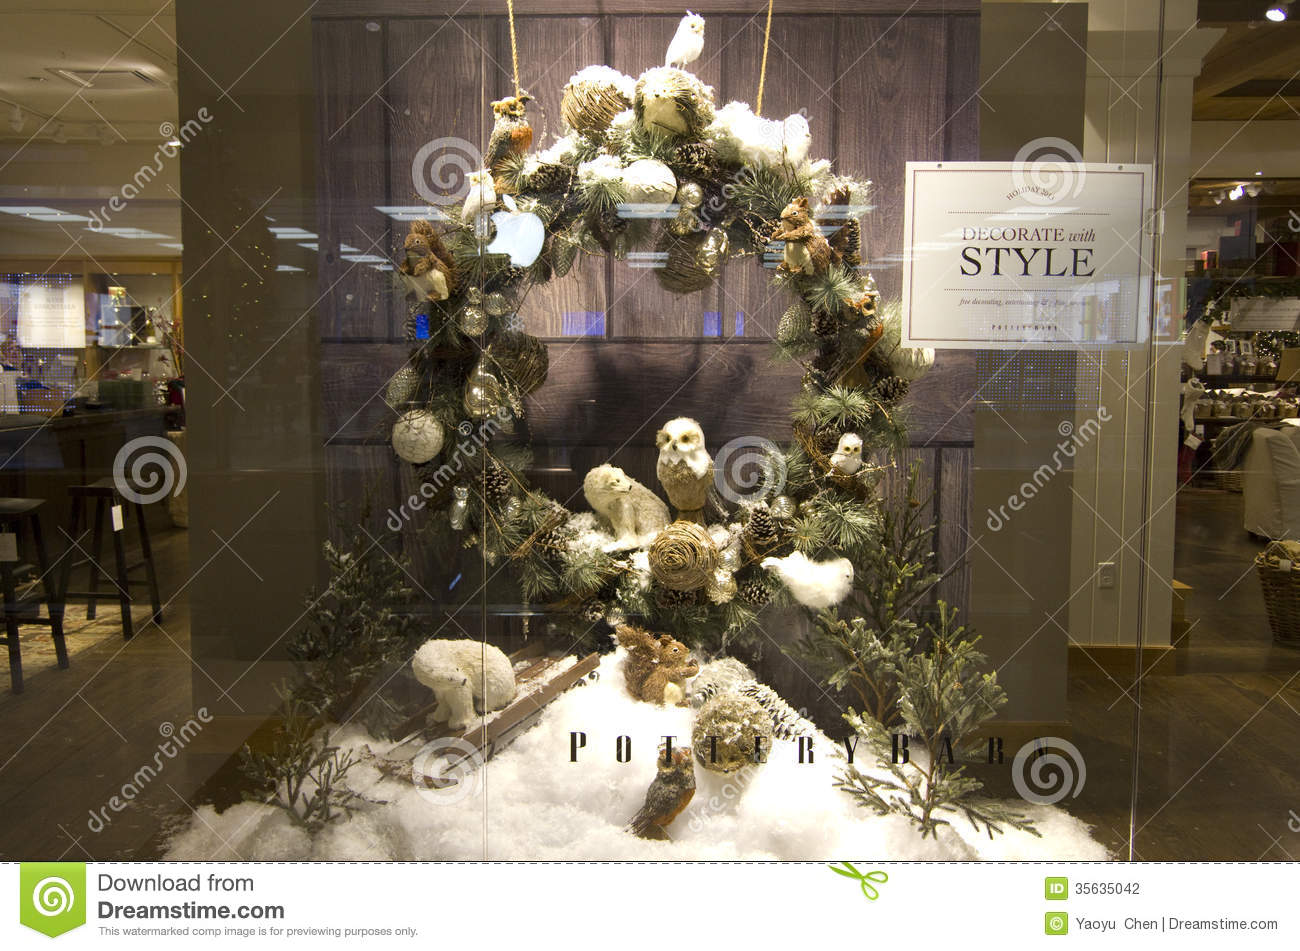 Thanksgiving christmas decorations home deco store window for Decoration de fenetre pour noel